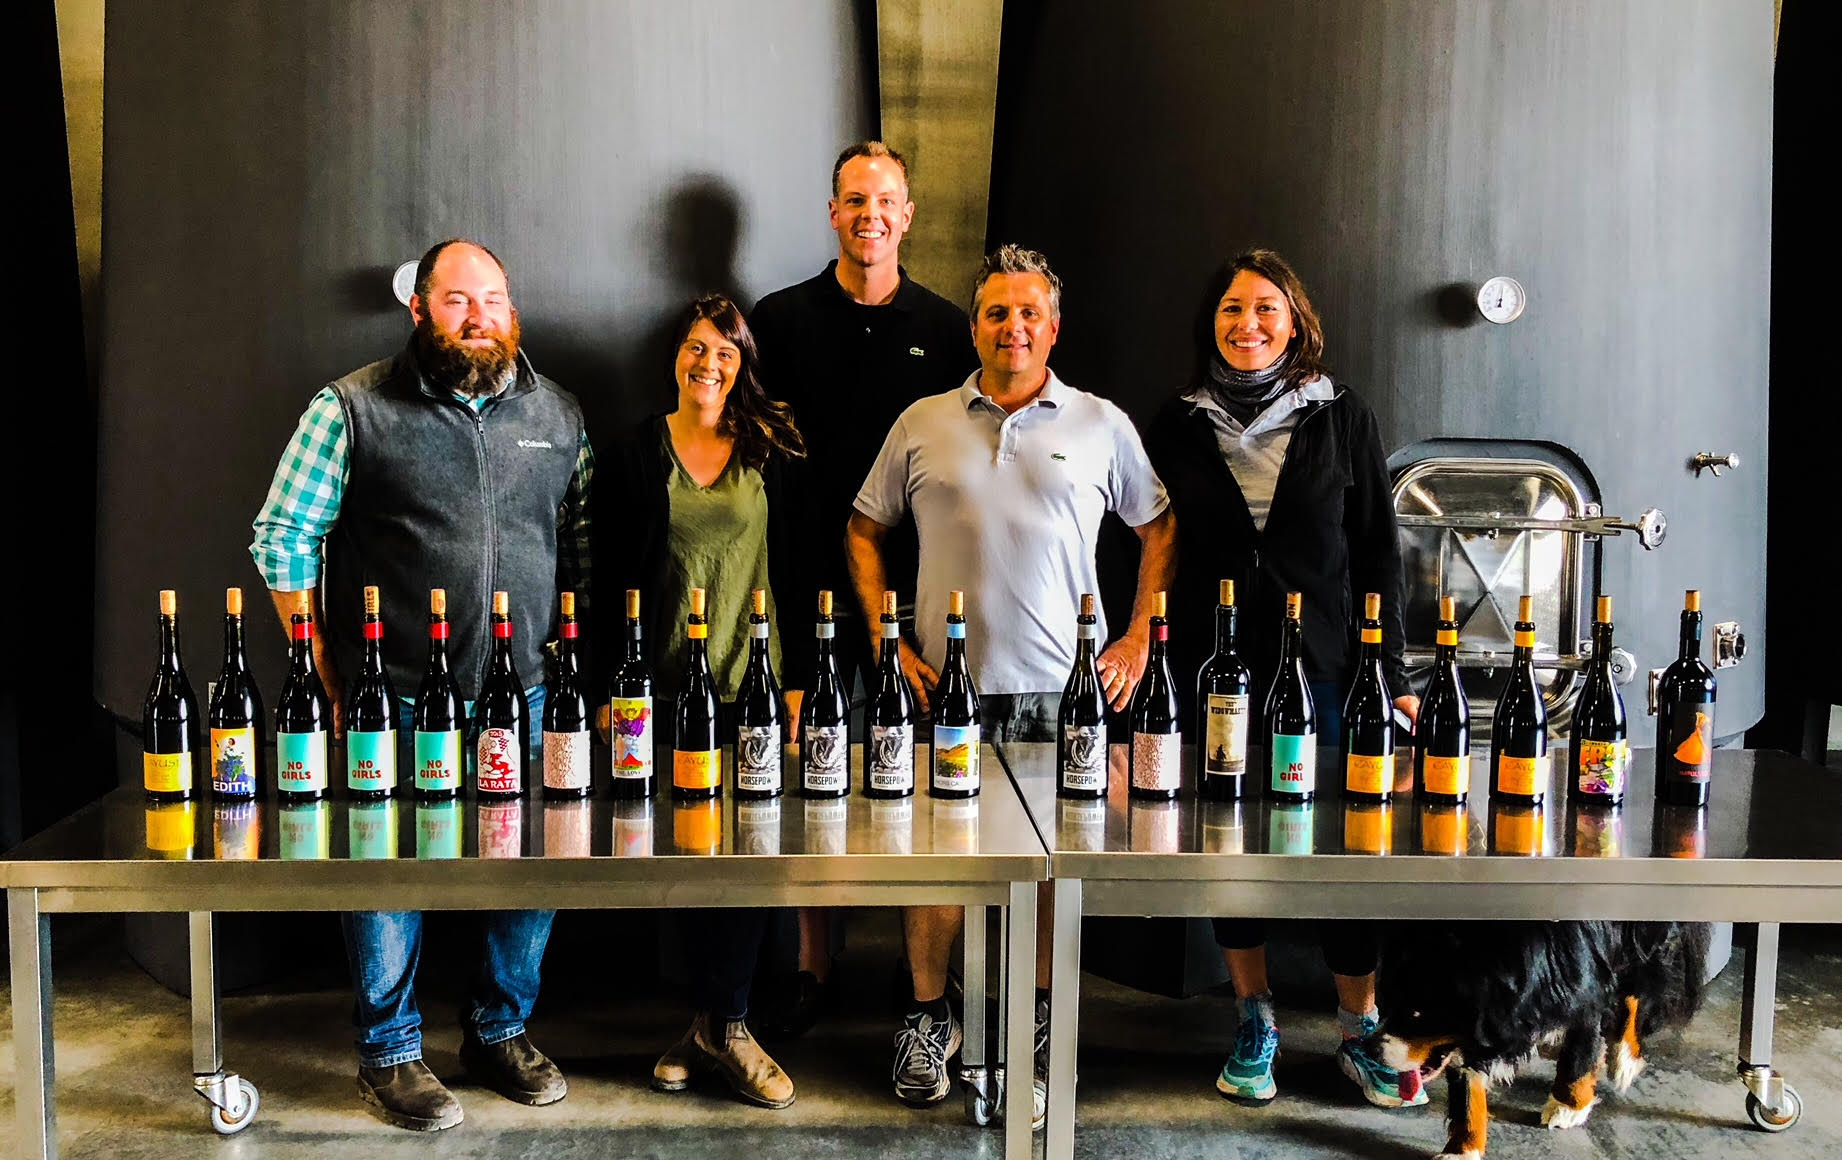 It was a tremendous opportunity tasting some older vintages with the superstar team of Cayuse Vineyards, led by eminent vigneron, Christophe Baron.